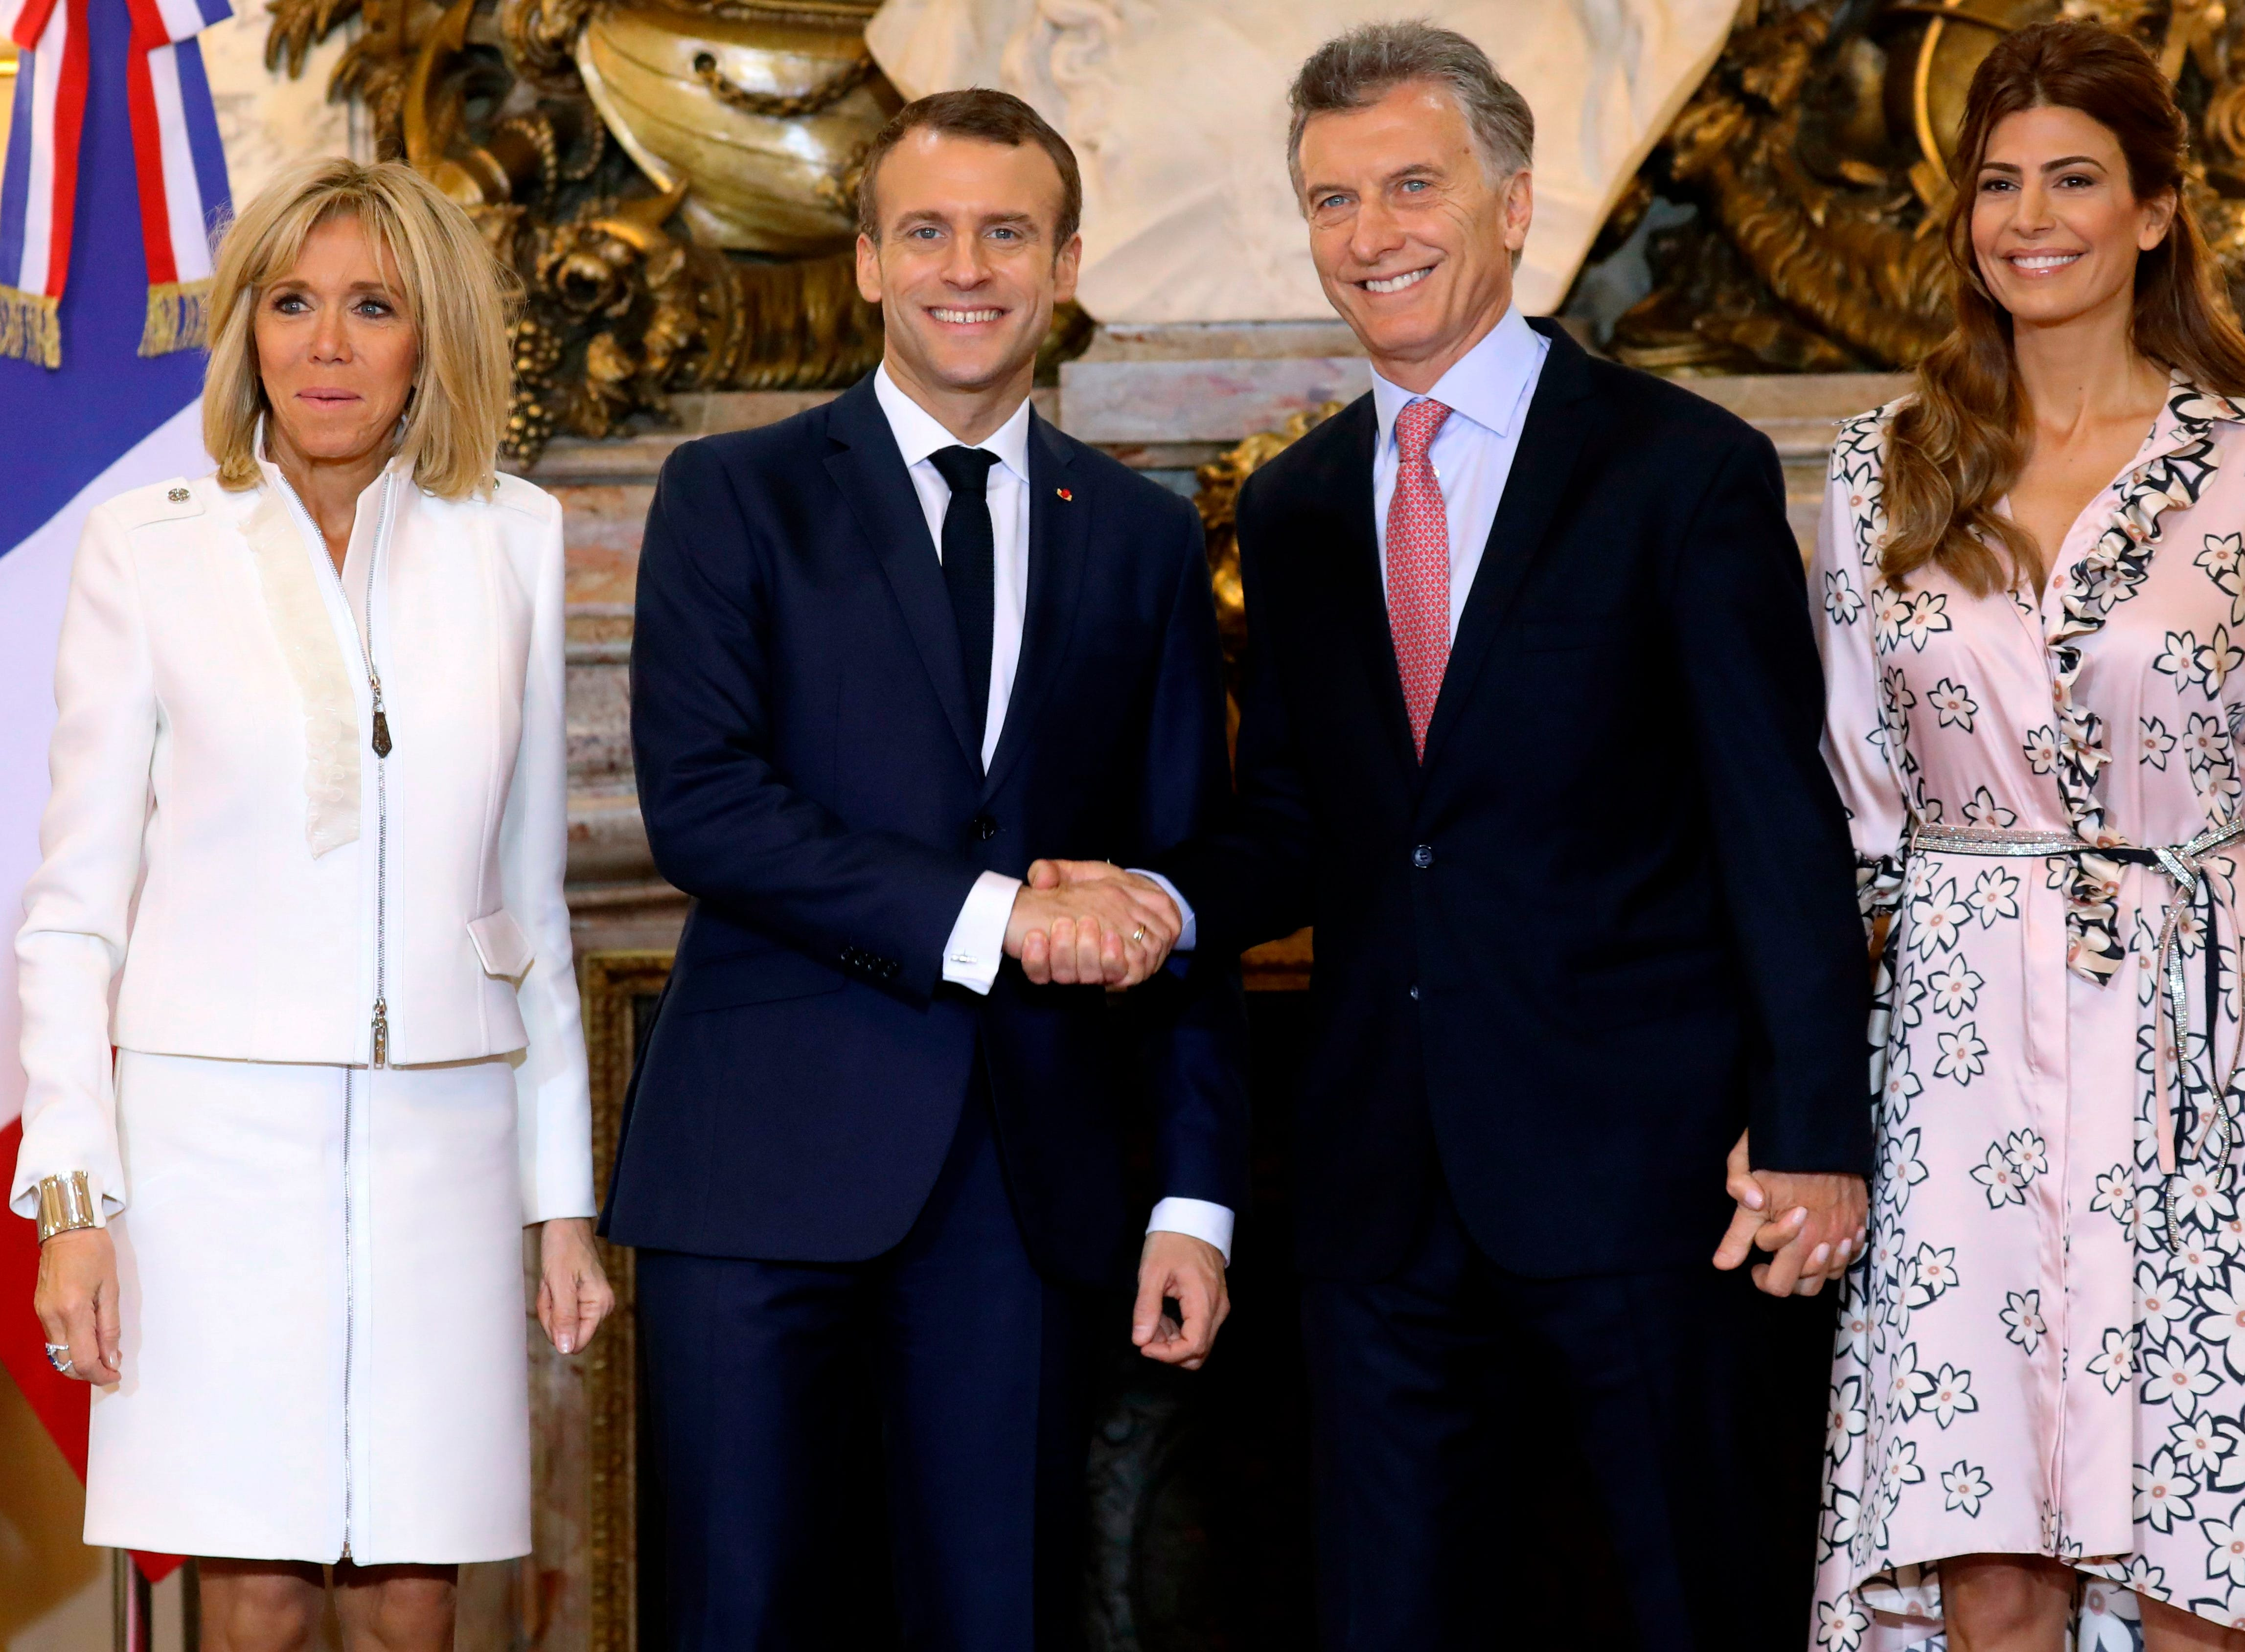 France's President Emmanuel Macron (2nd L) shakes hands with Argentina's President Mauricio Macri next to France's First Lady Brigitte Macron and Argentina's First Lady Juliana Awada (C) at the Casa Rosada presidential palace in Buenos Aires, on November 29, 2018, on the eve of the G20 Leaders' Summit. - Global leaders gather in the Argentine capital for a two-day G20 summit beginning on Friday likely to be dominated by simmering international tensions over trade. (Photo by Ludovic MARIN / AFP)        (Photo credit should read LUDOVIC MARIN/AFP/Getty Images)